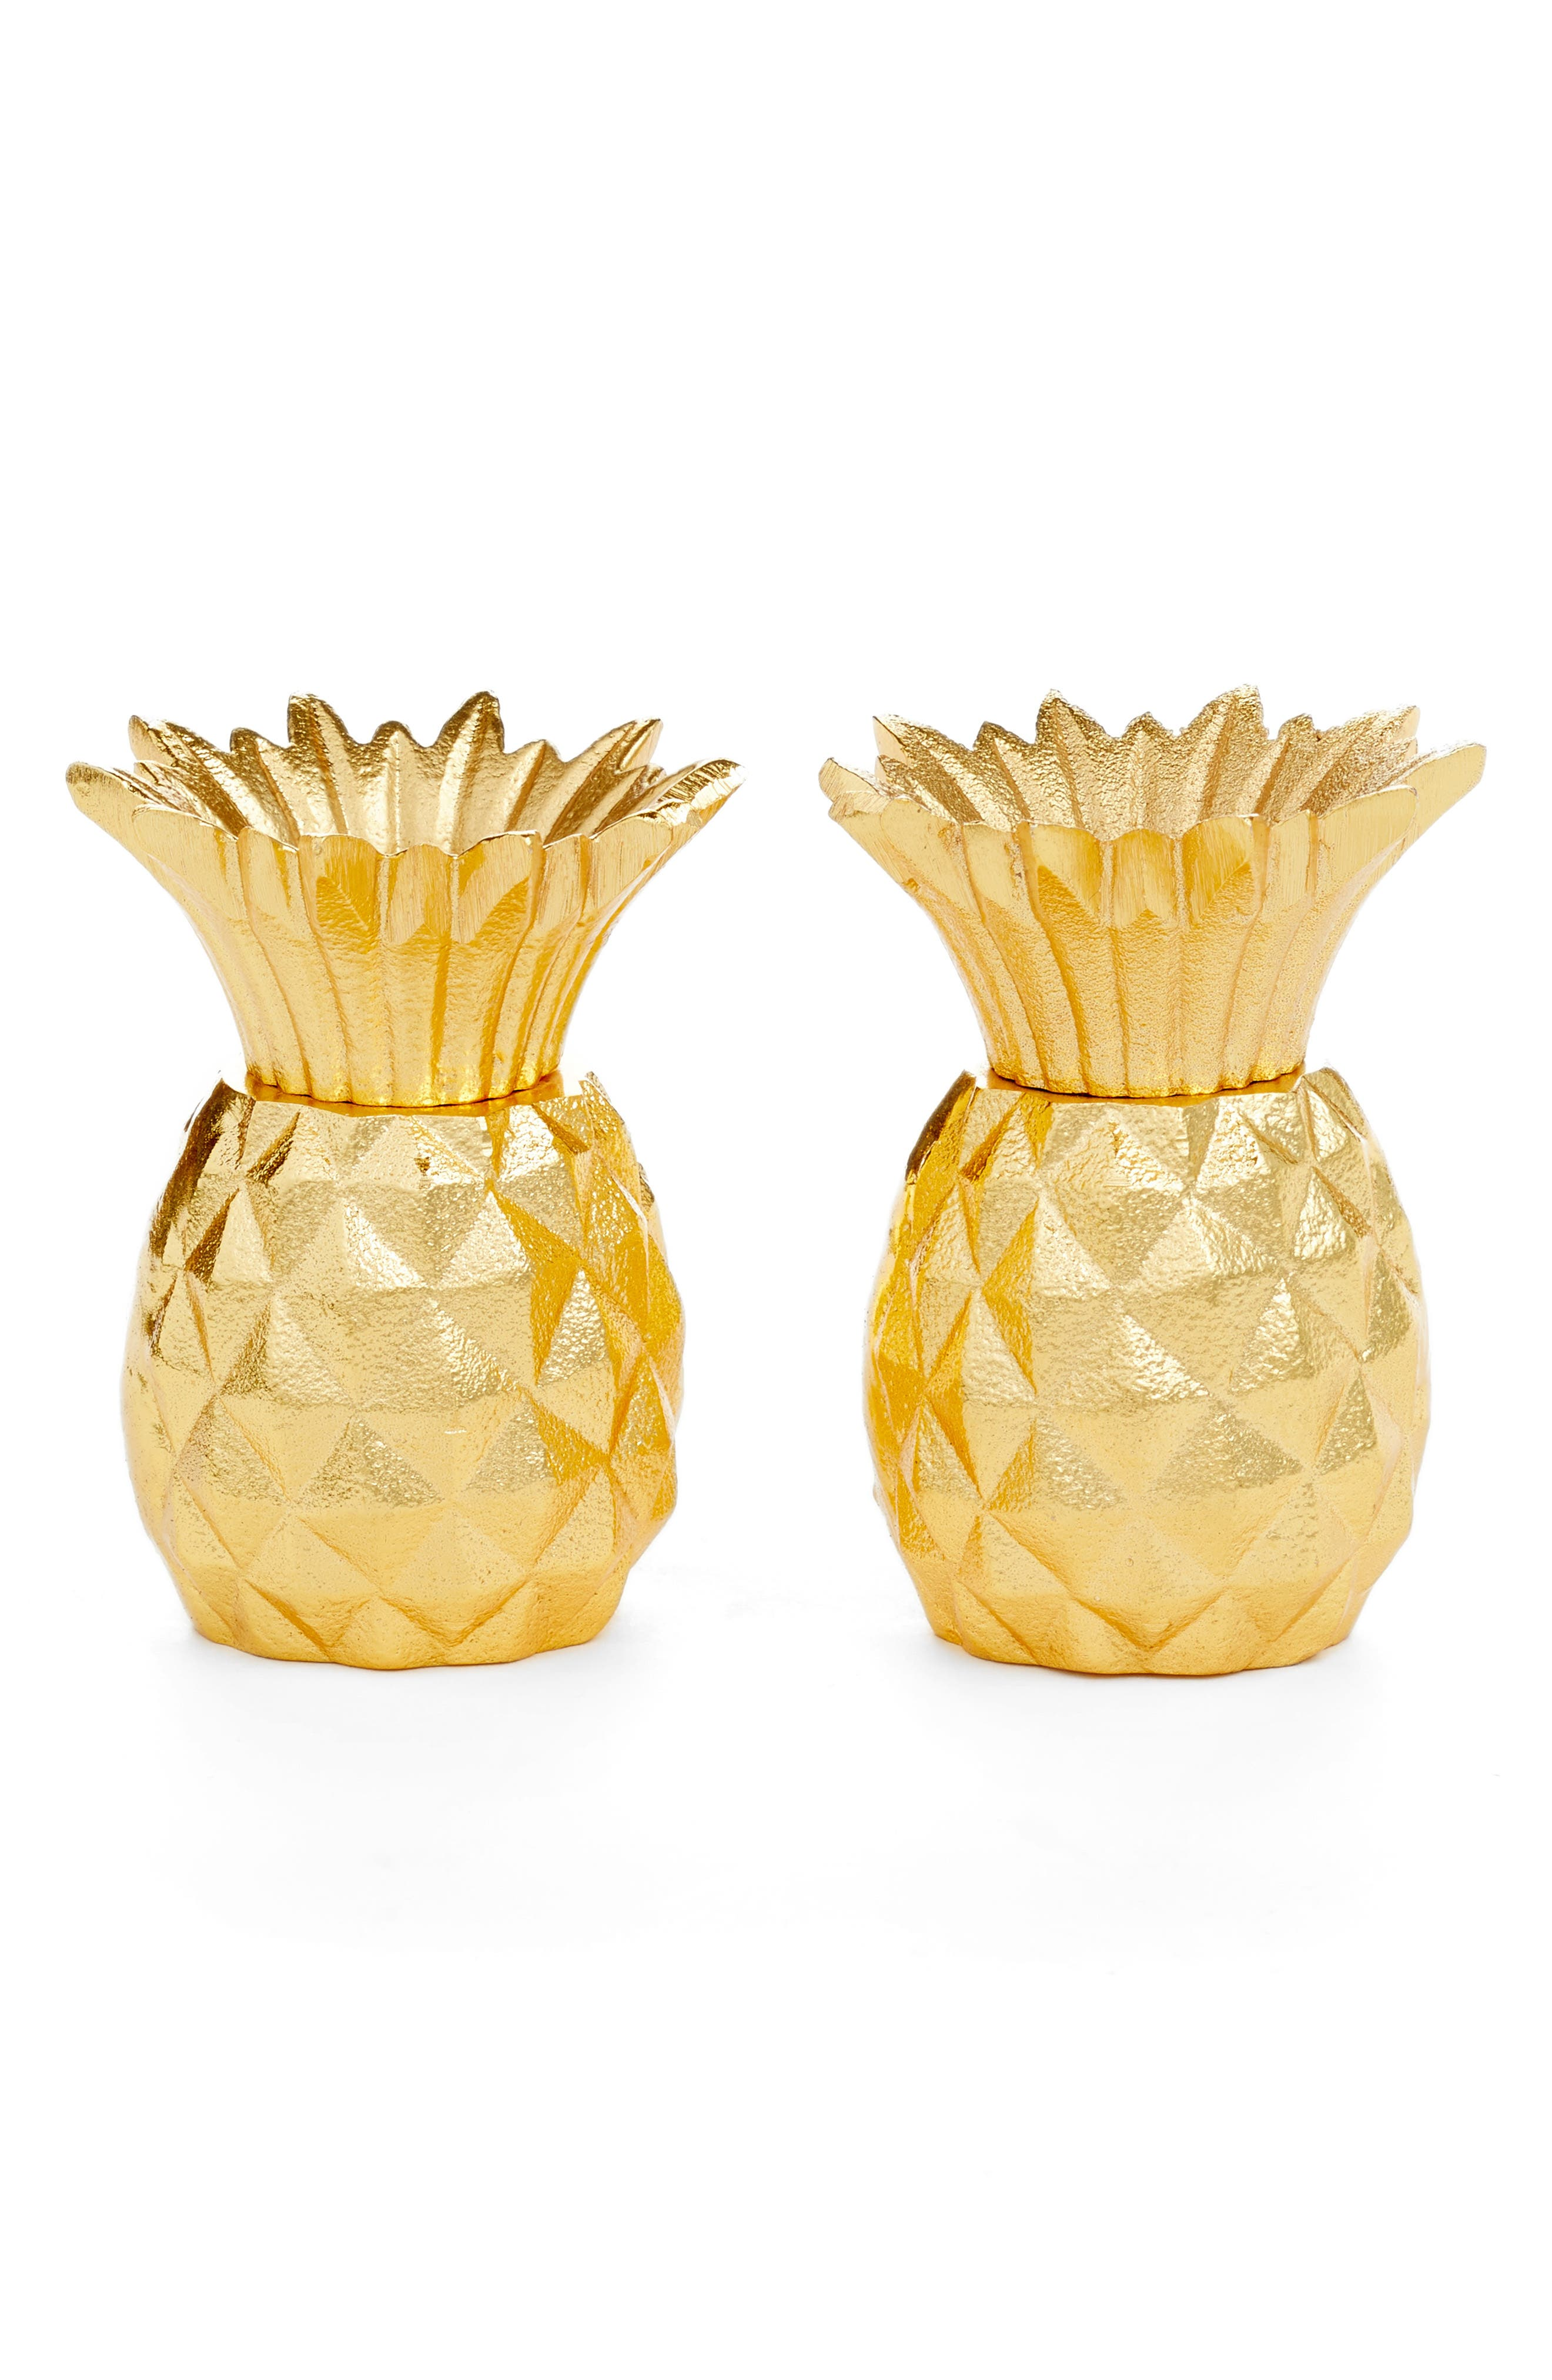 Nordstrom at Home Pineapple Salt & Pepper Shaker Set